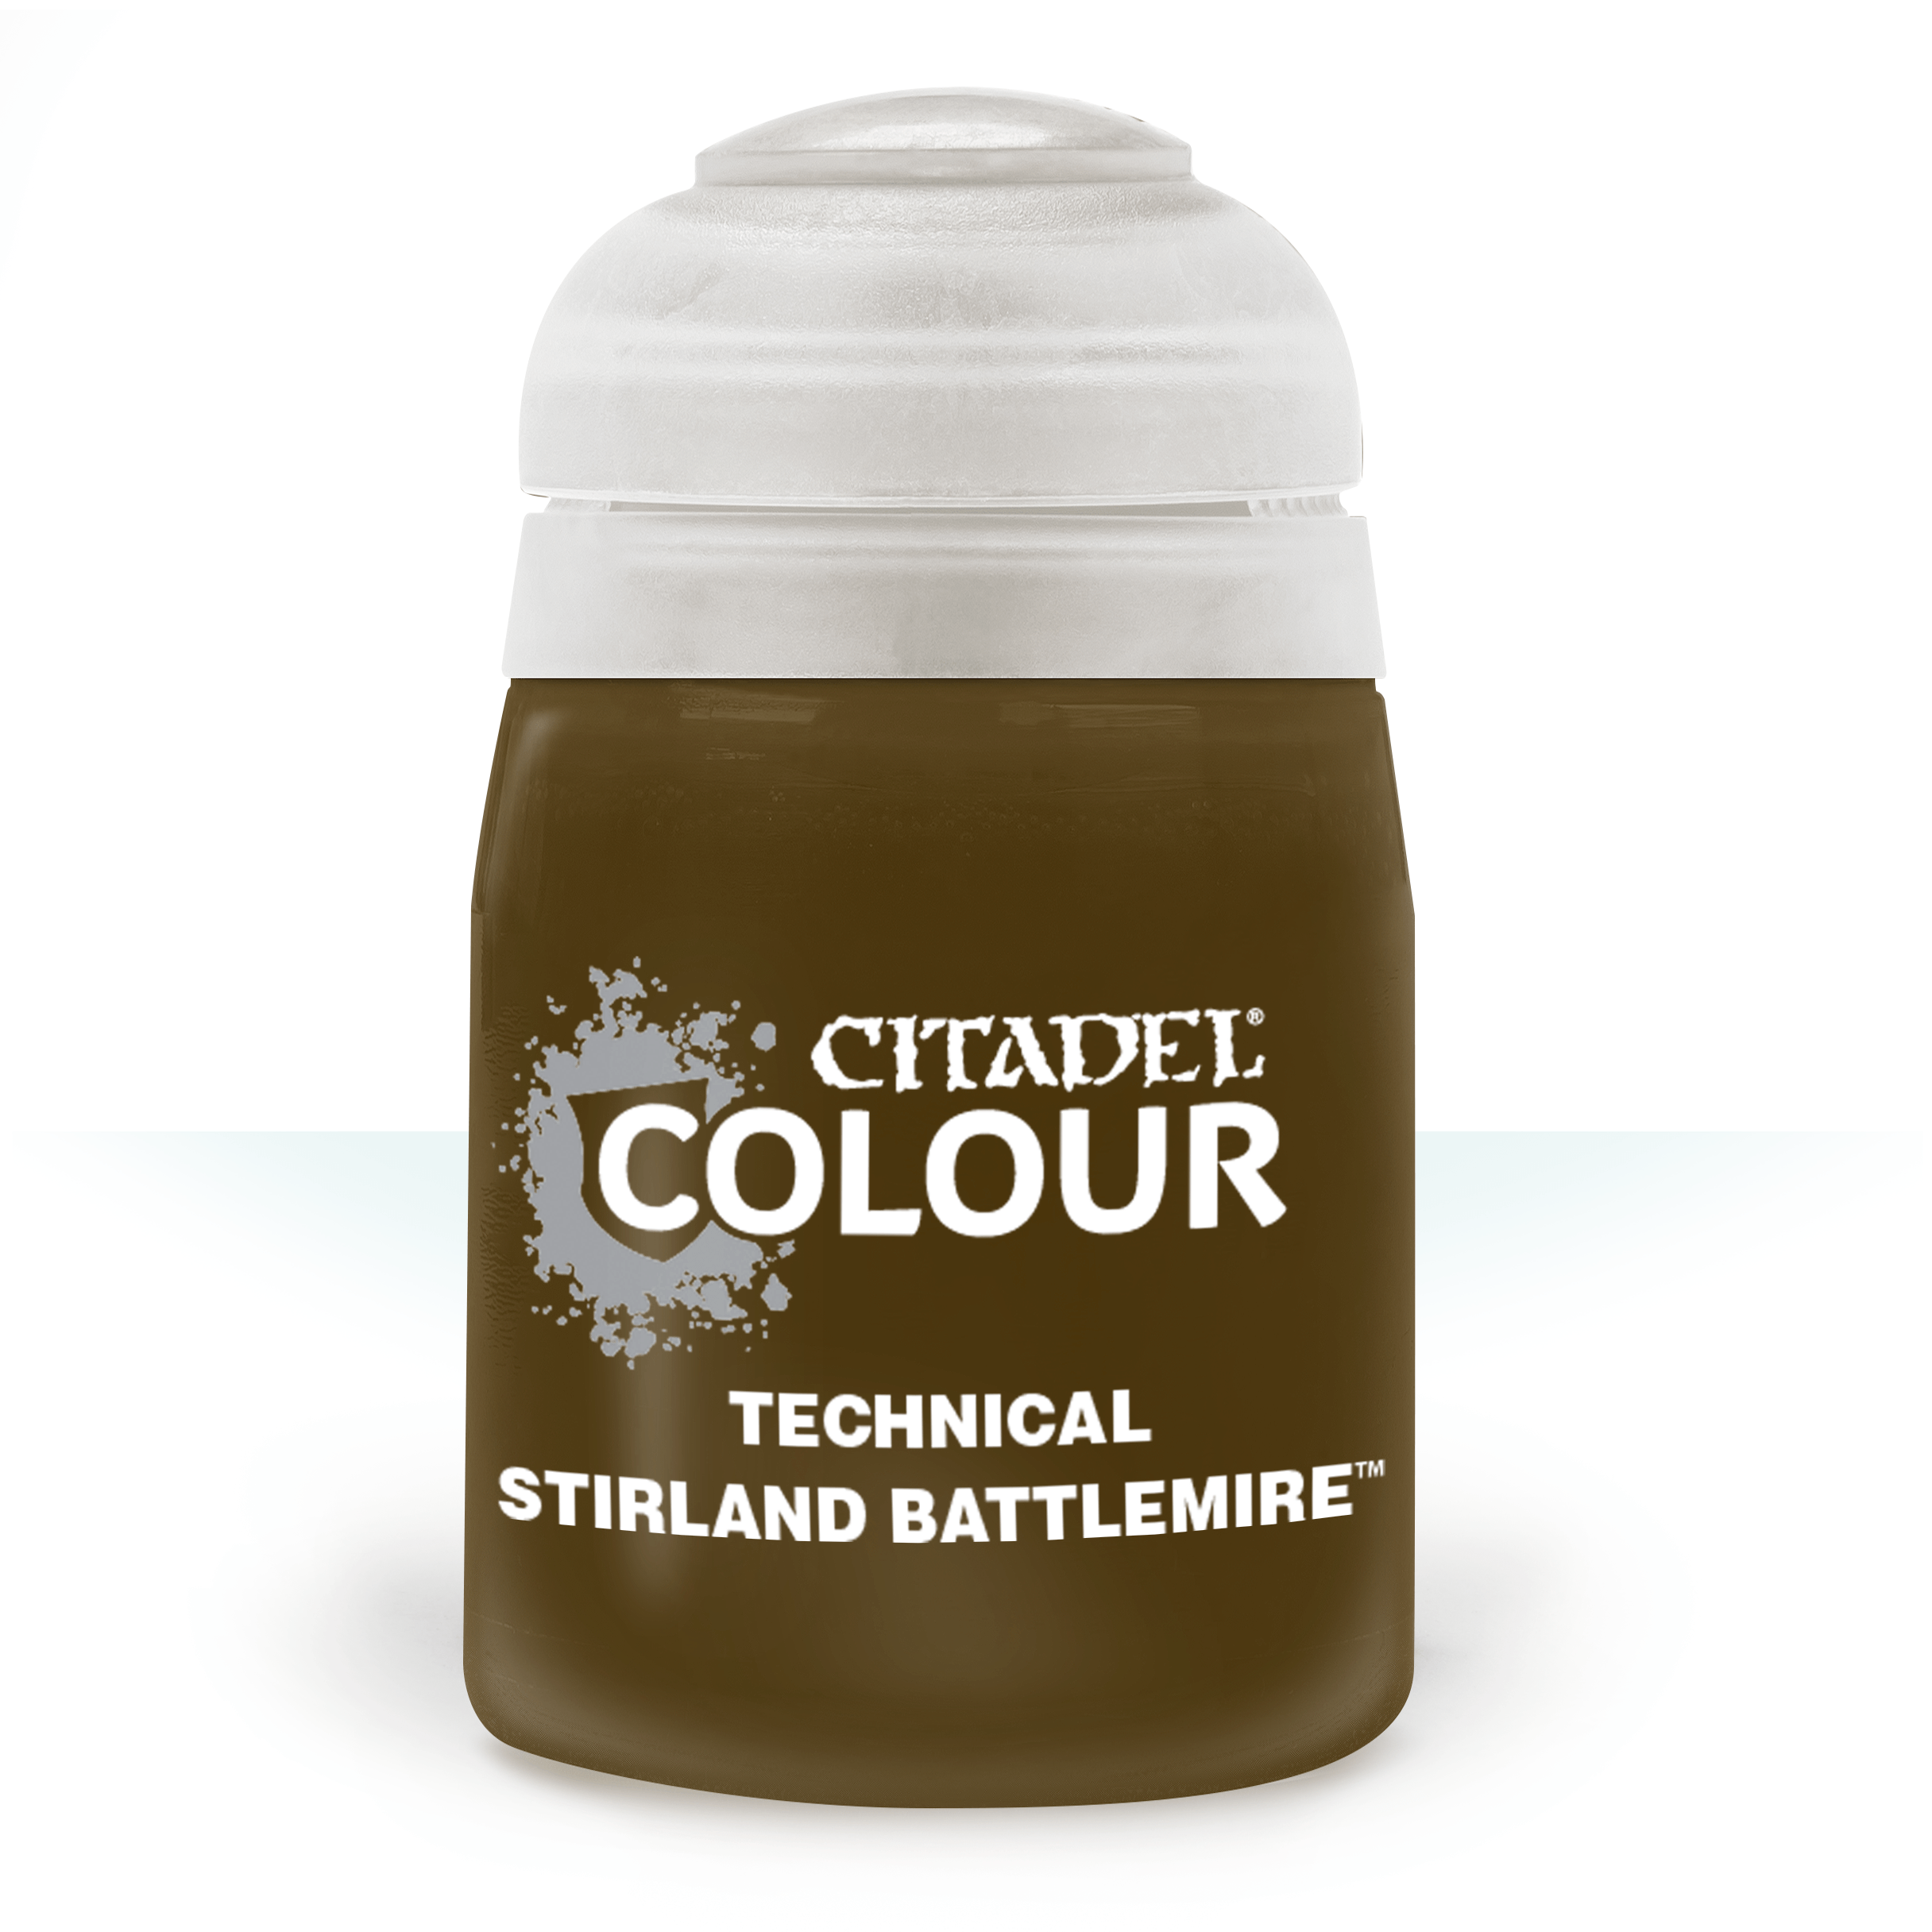 Stirland Battlemire, Citadel Technical 24ml